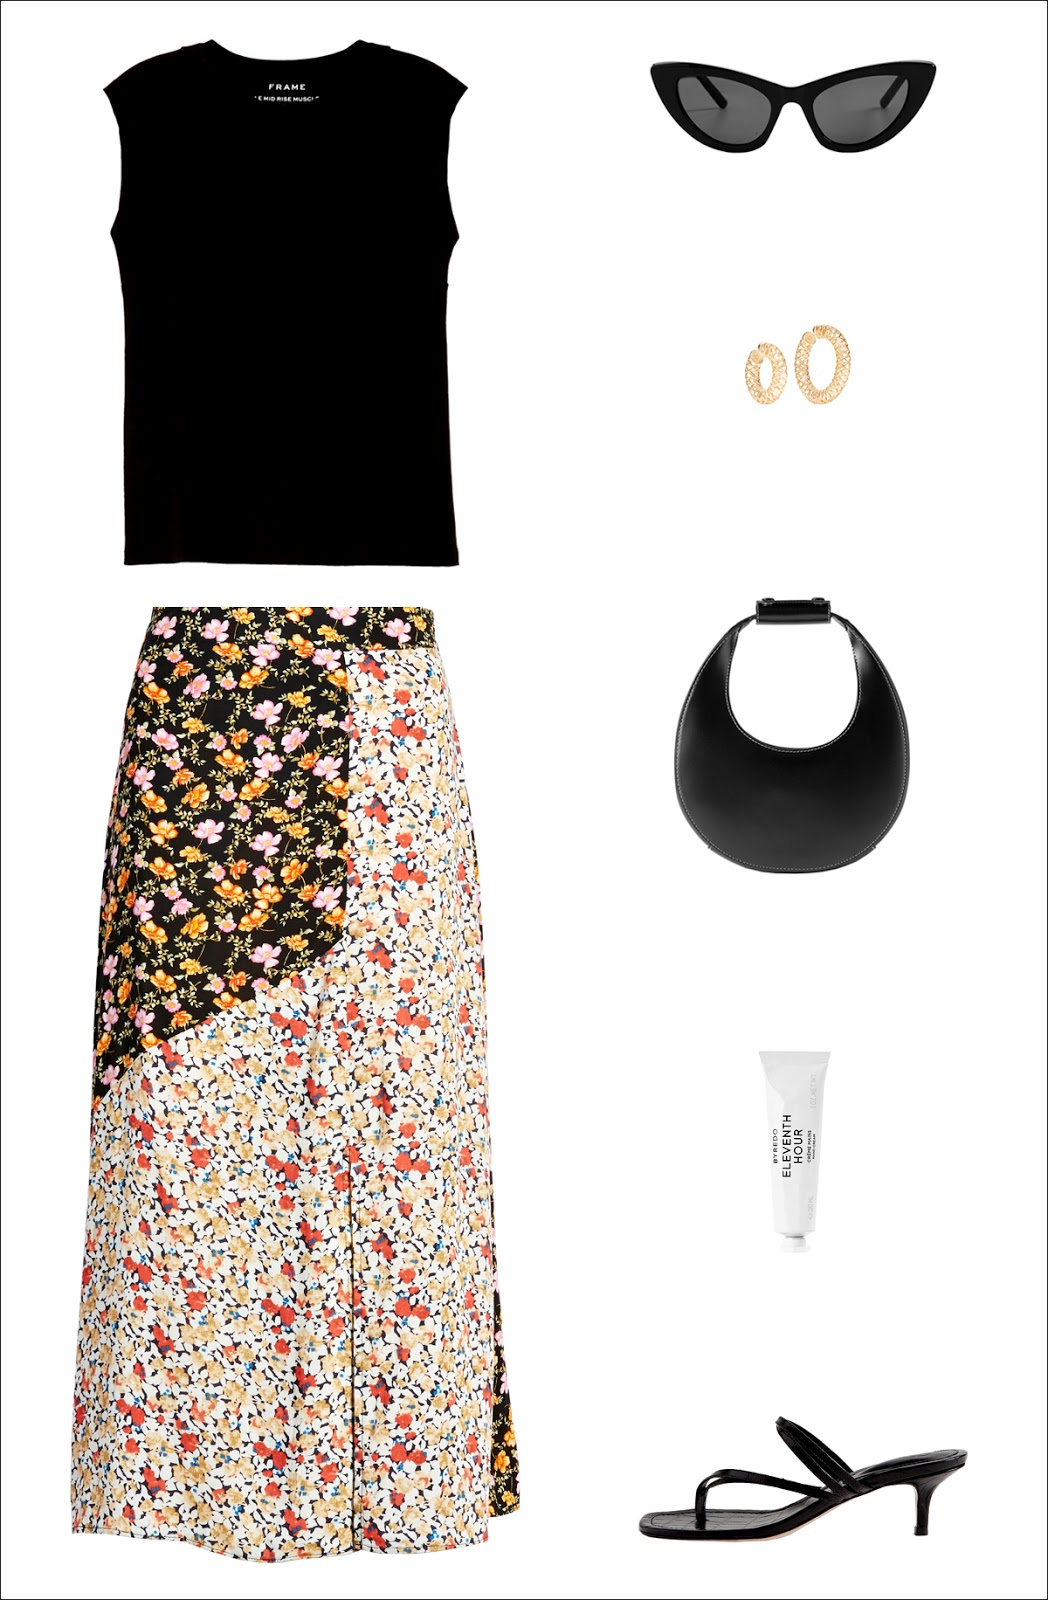 Summer Outfit Idea: black muscle tank top, black cat-eye sunglasses, cool hoop earrings, a black mini bag, under-$50 floral print skirt and sleek black kitten heel sandals.